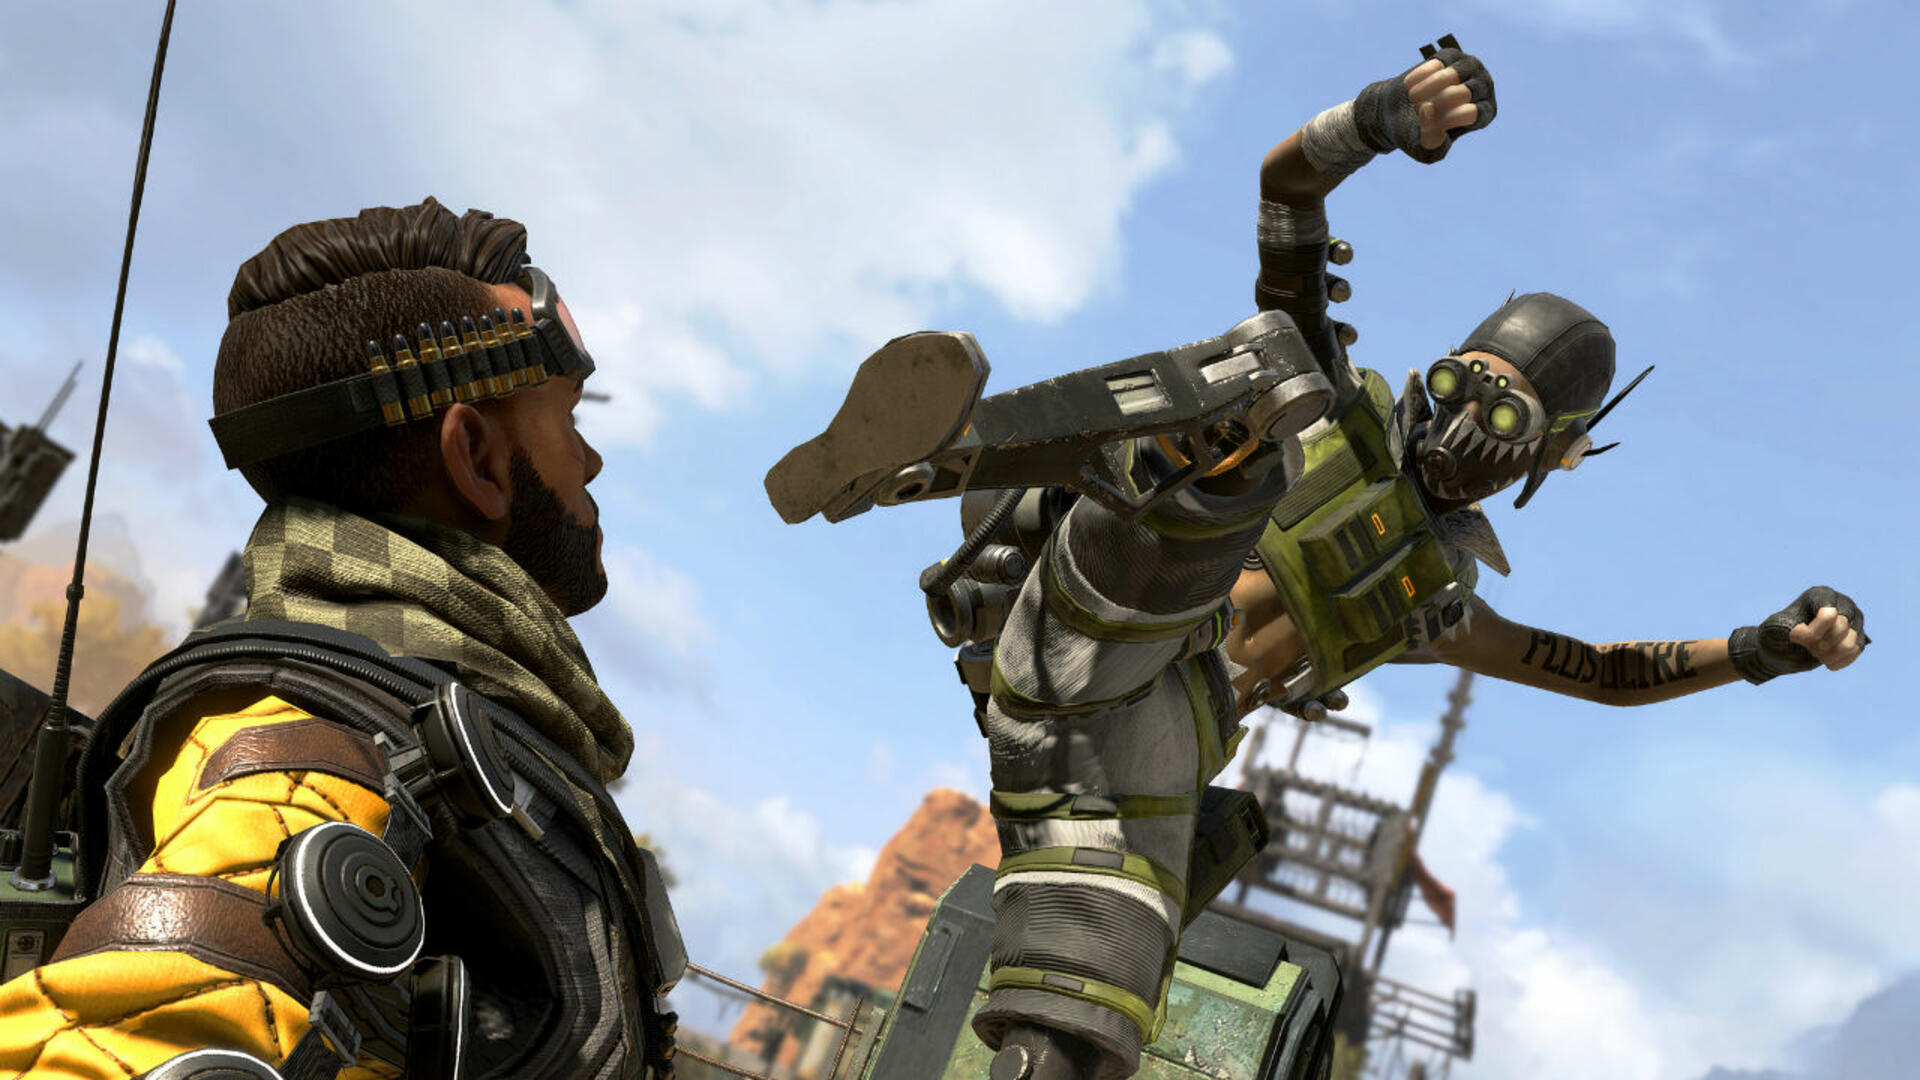 Apex Legends Leaked Event Trailer Highlights a High-Octane Takeover of the Town